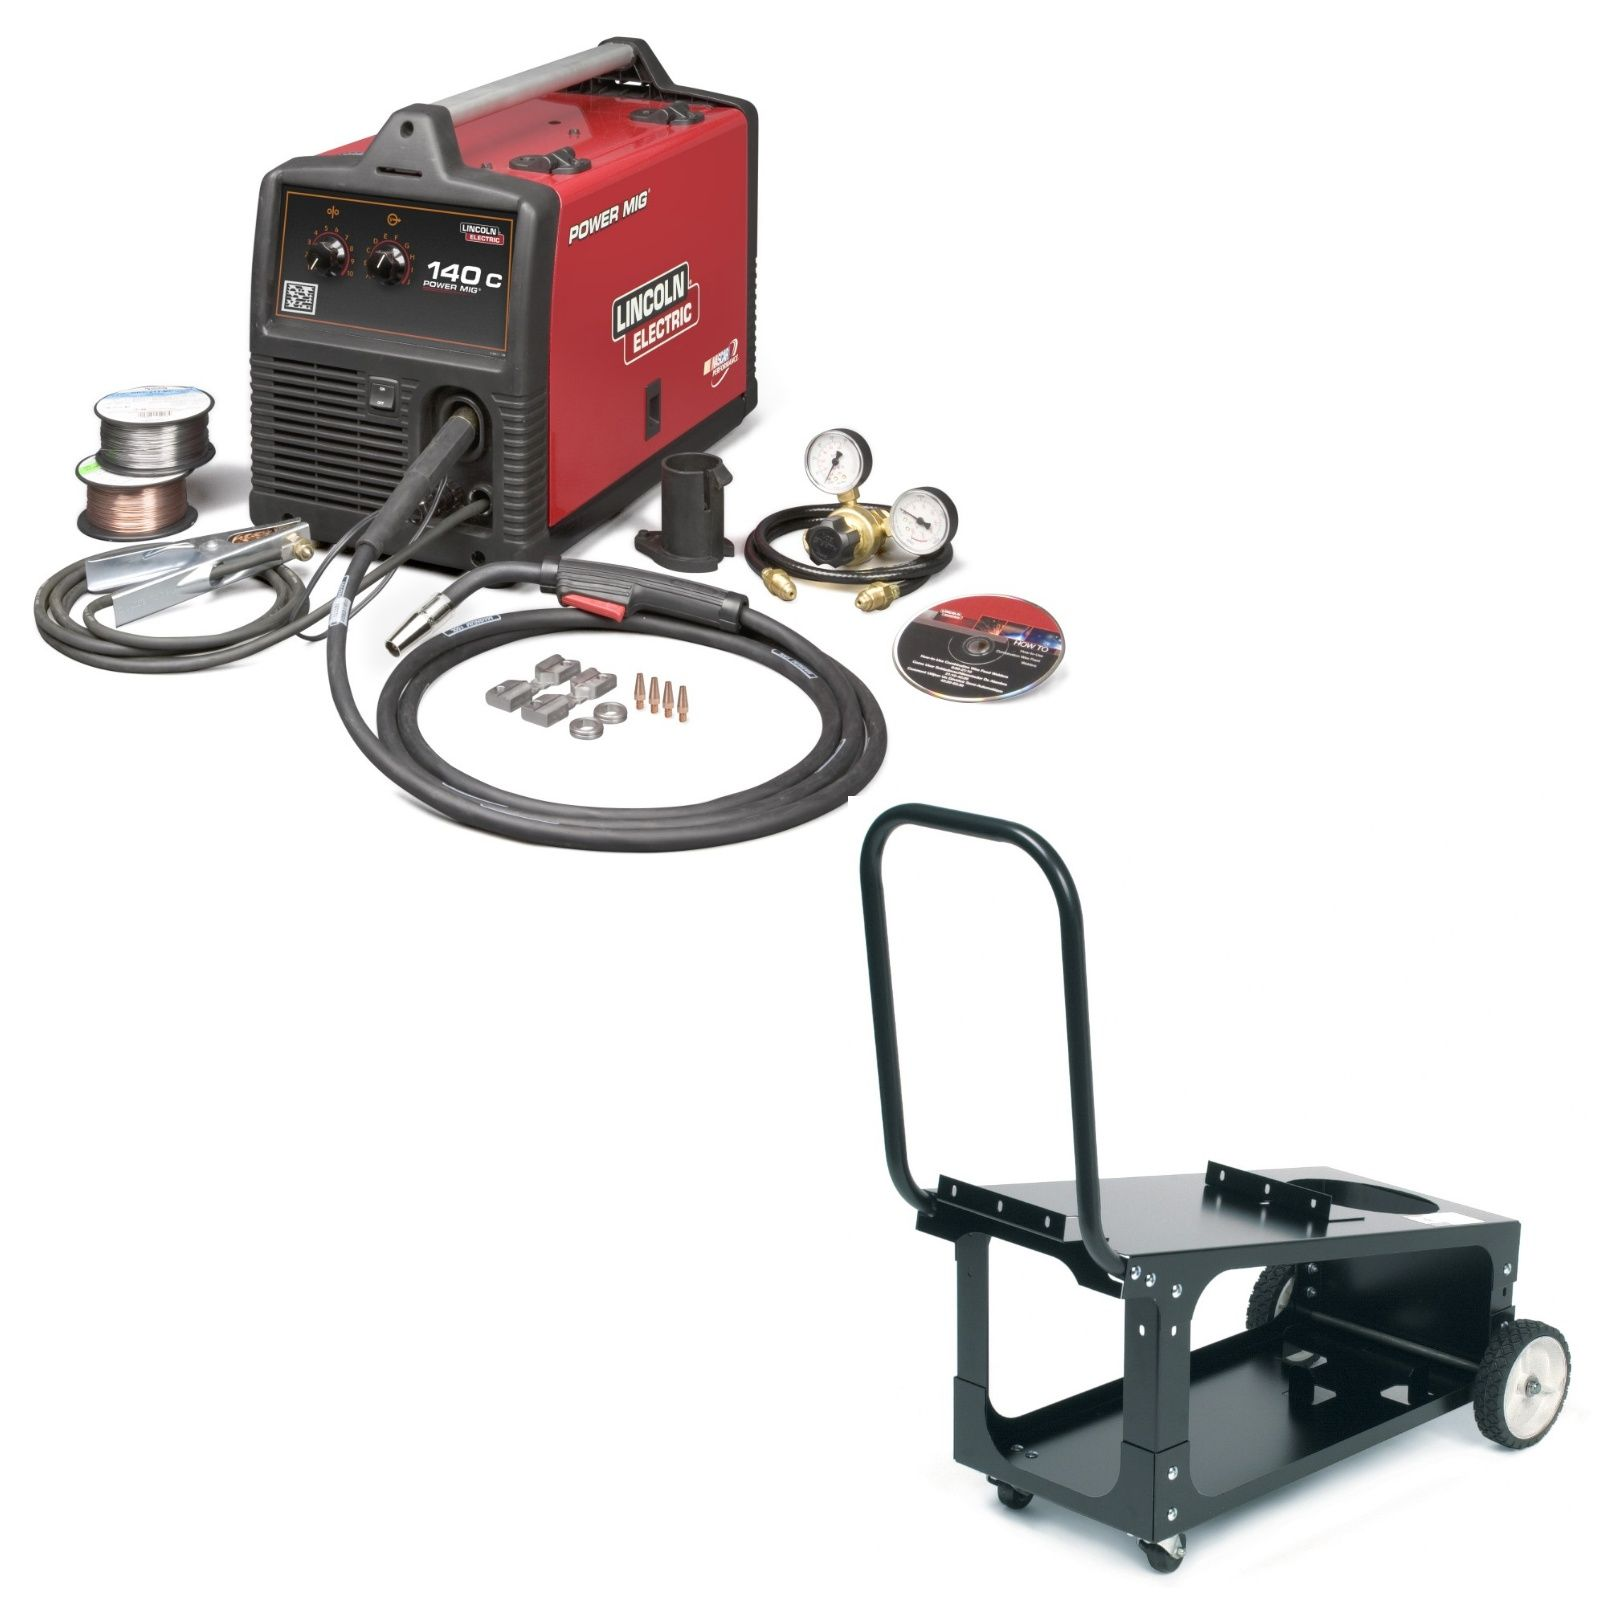 Lincoln Power MIG 140C MIG Welder with Cart for sale (K2471-2 ...